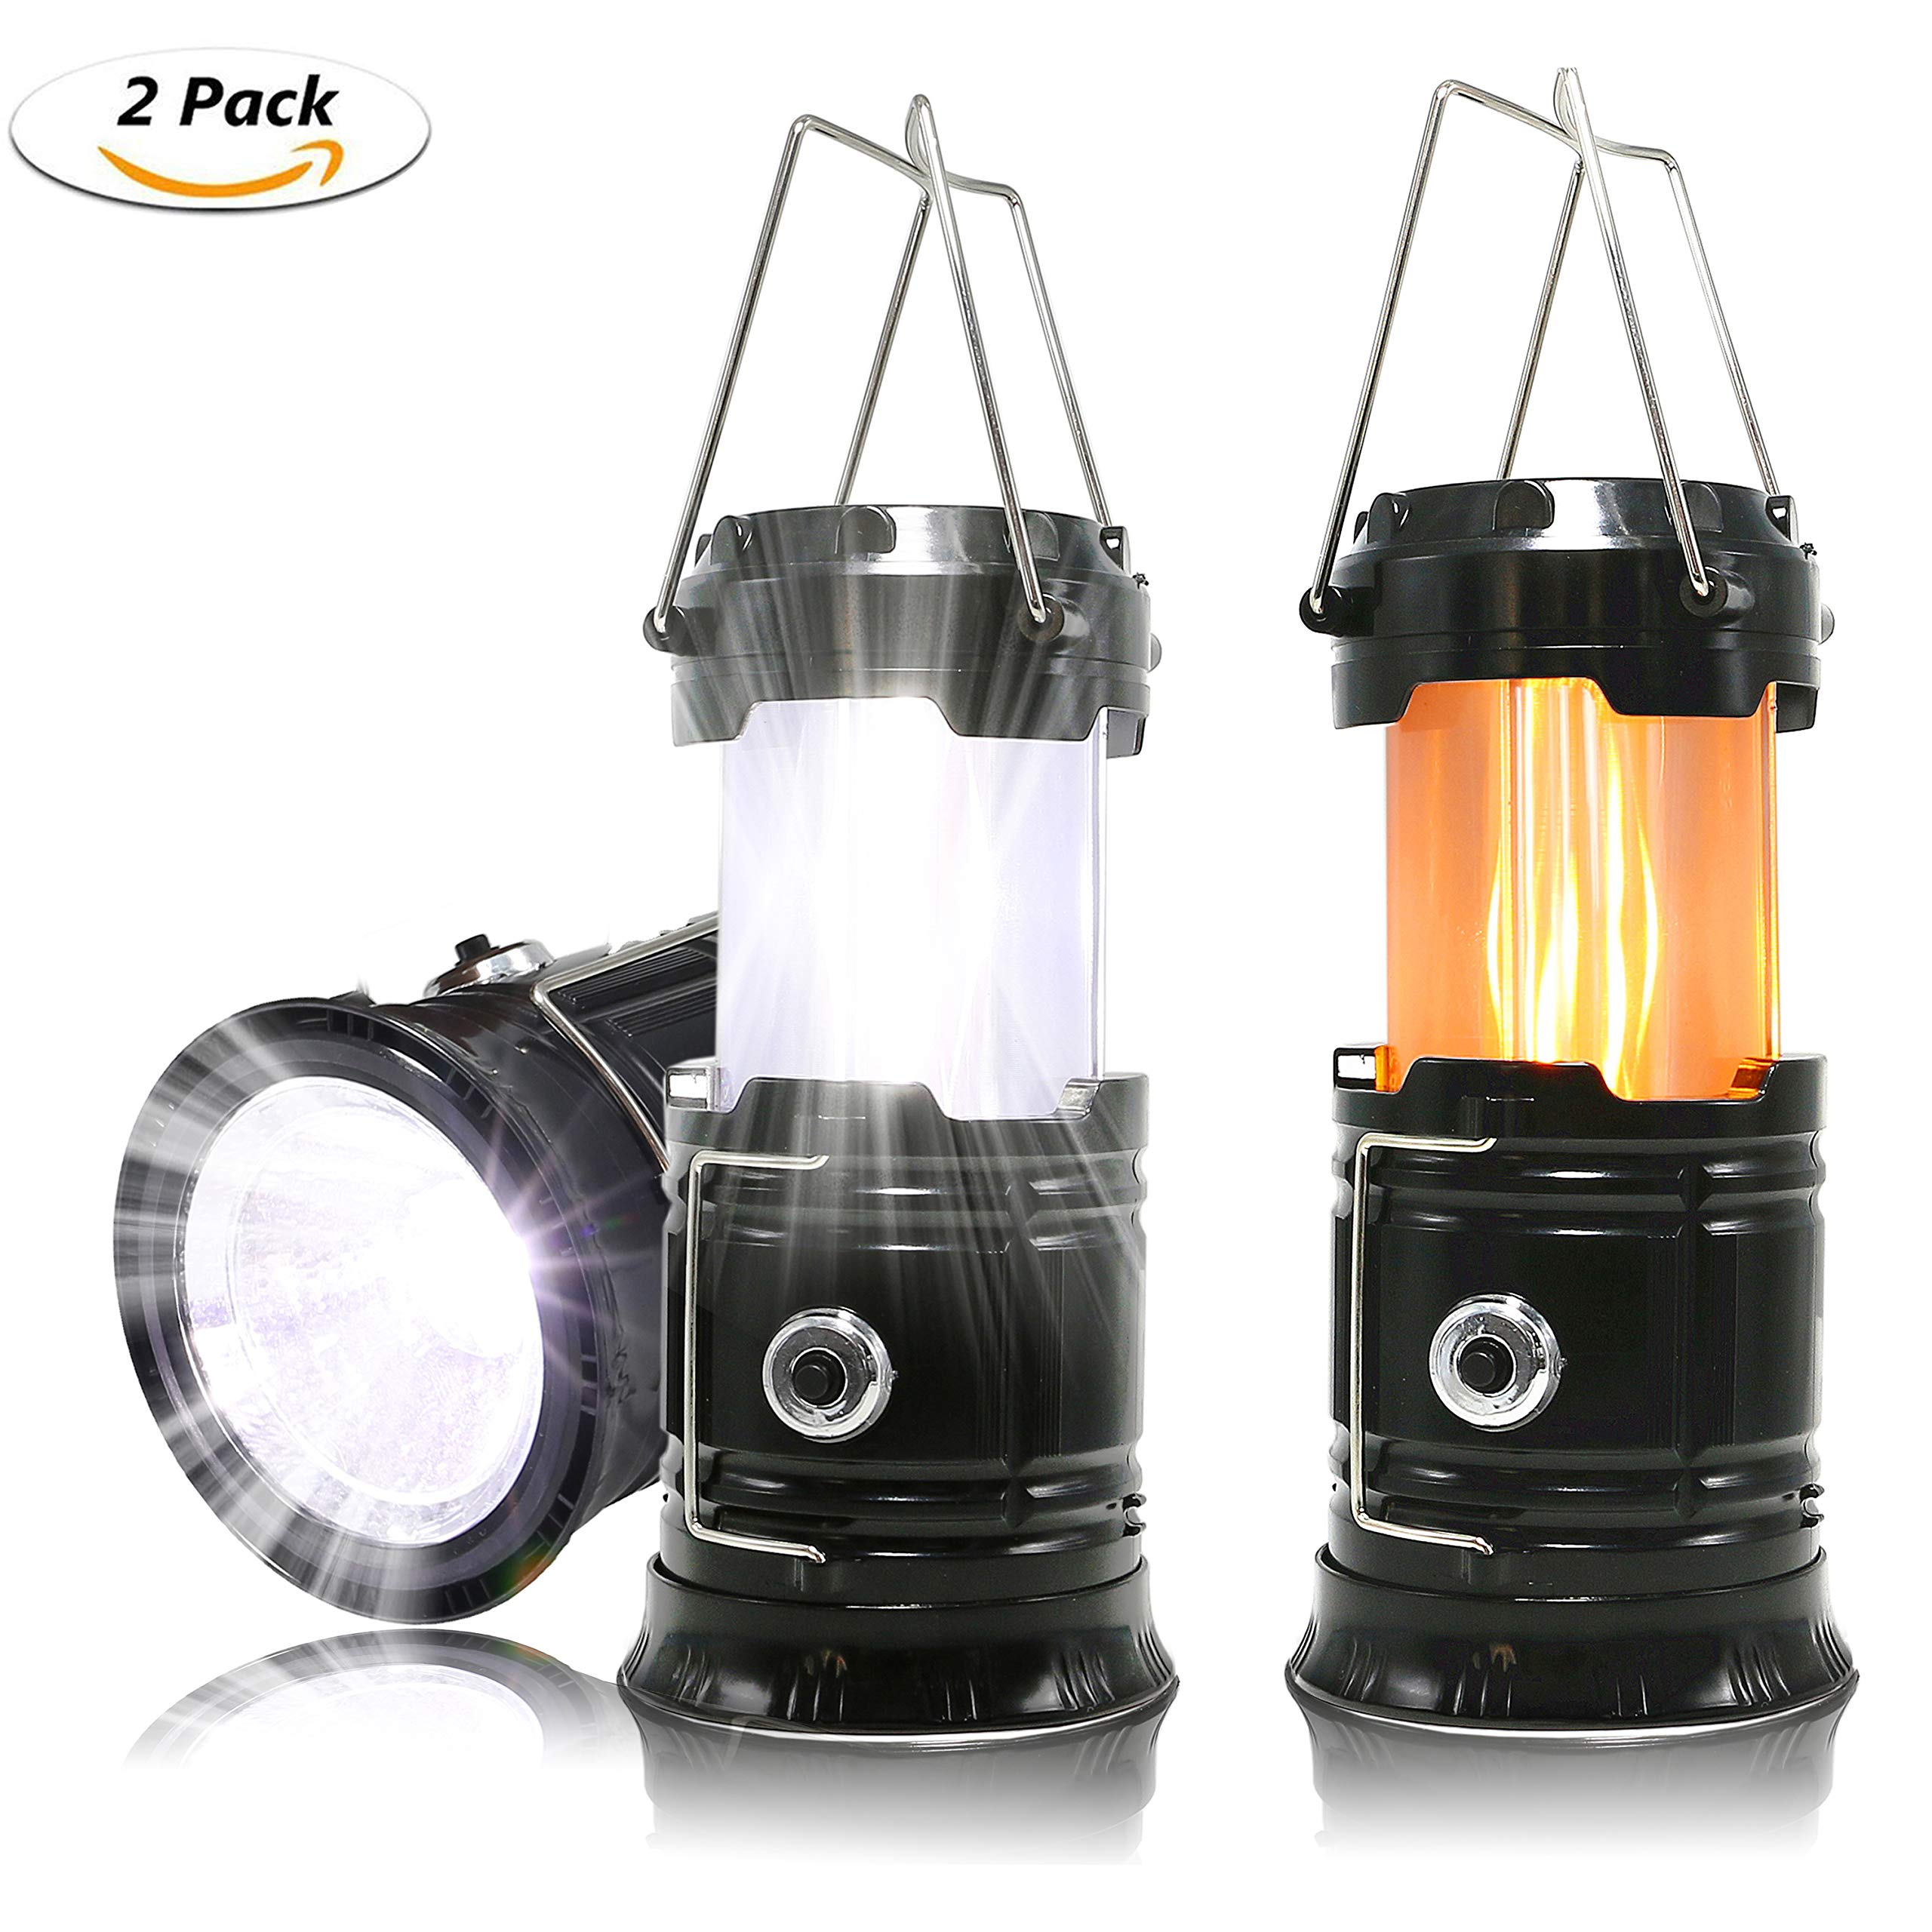 HLZHOU 2 Pack Portable LED Camping Lantern, [2018 UPGRADED][3-IN-1] Decorative Flame light Ultra Bright Flashlights Collapsible Survival Kit for Emergence, Outdoor Black (Batteries Not included)